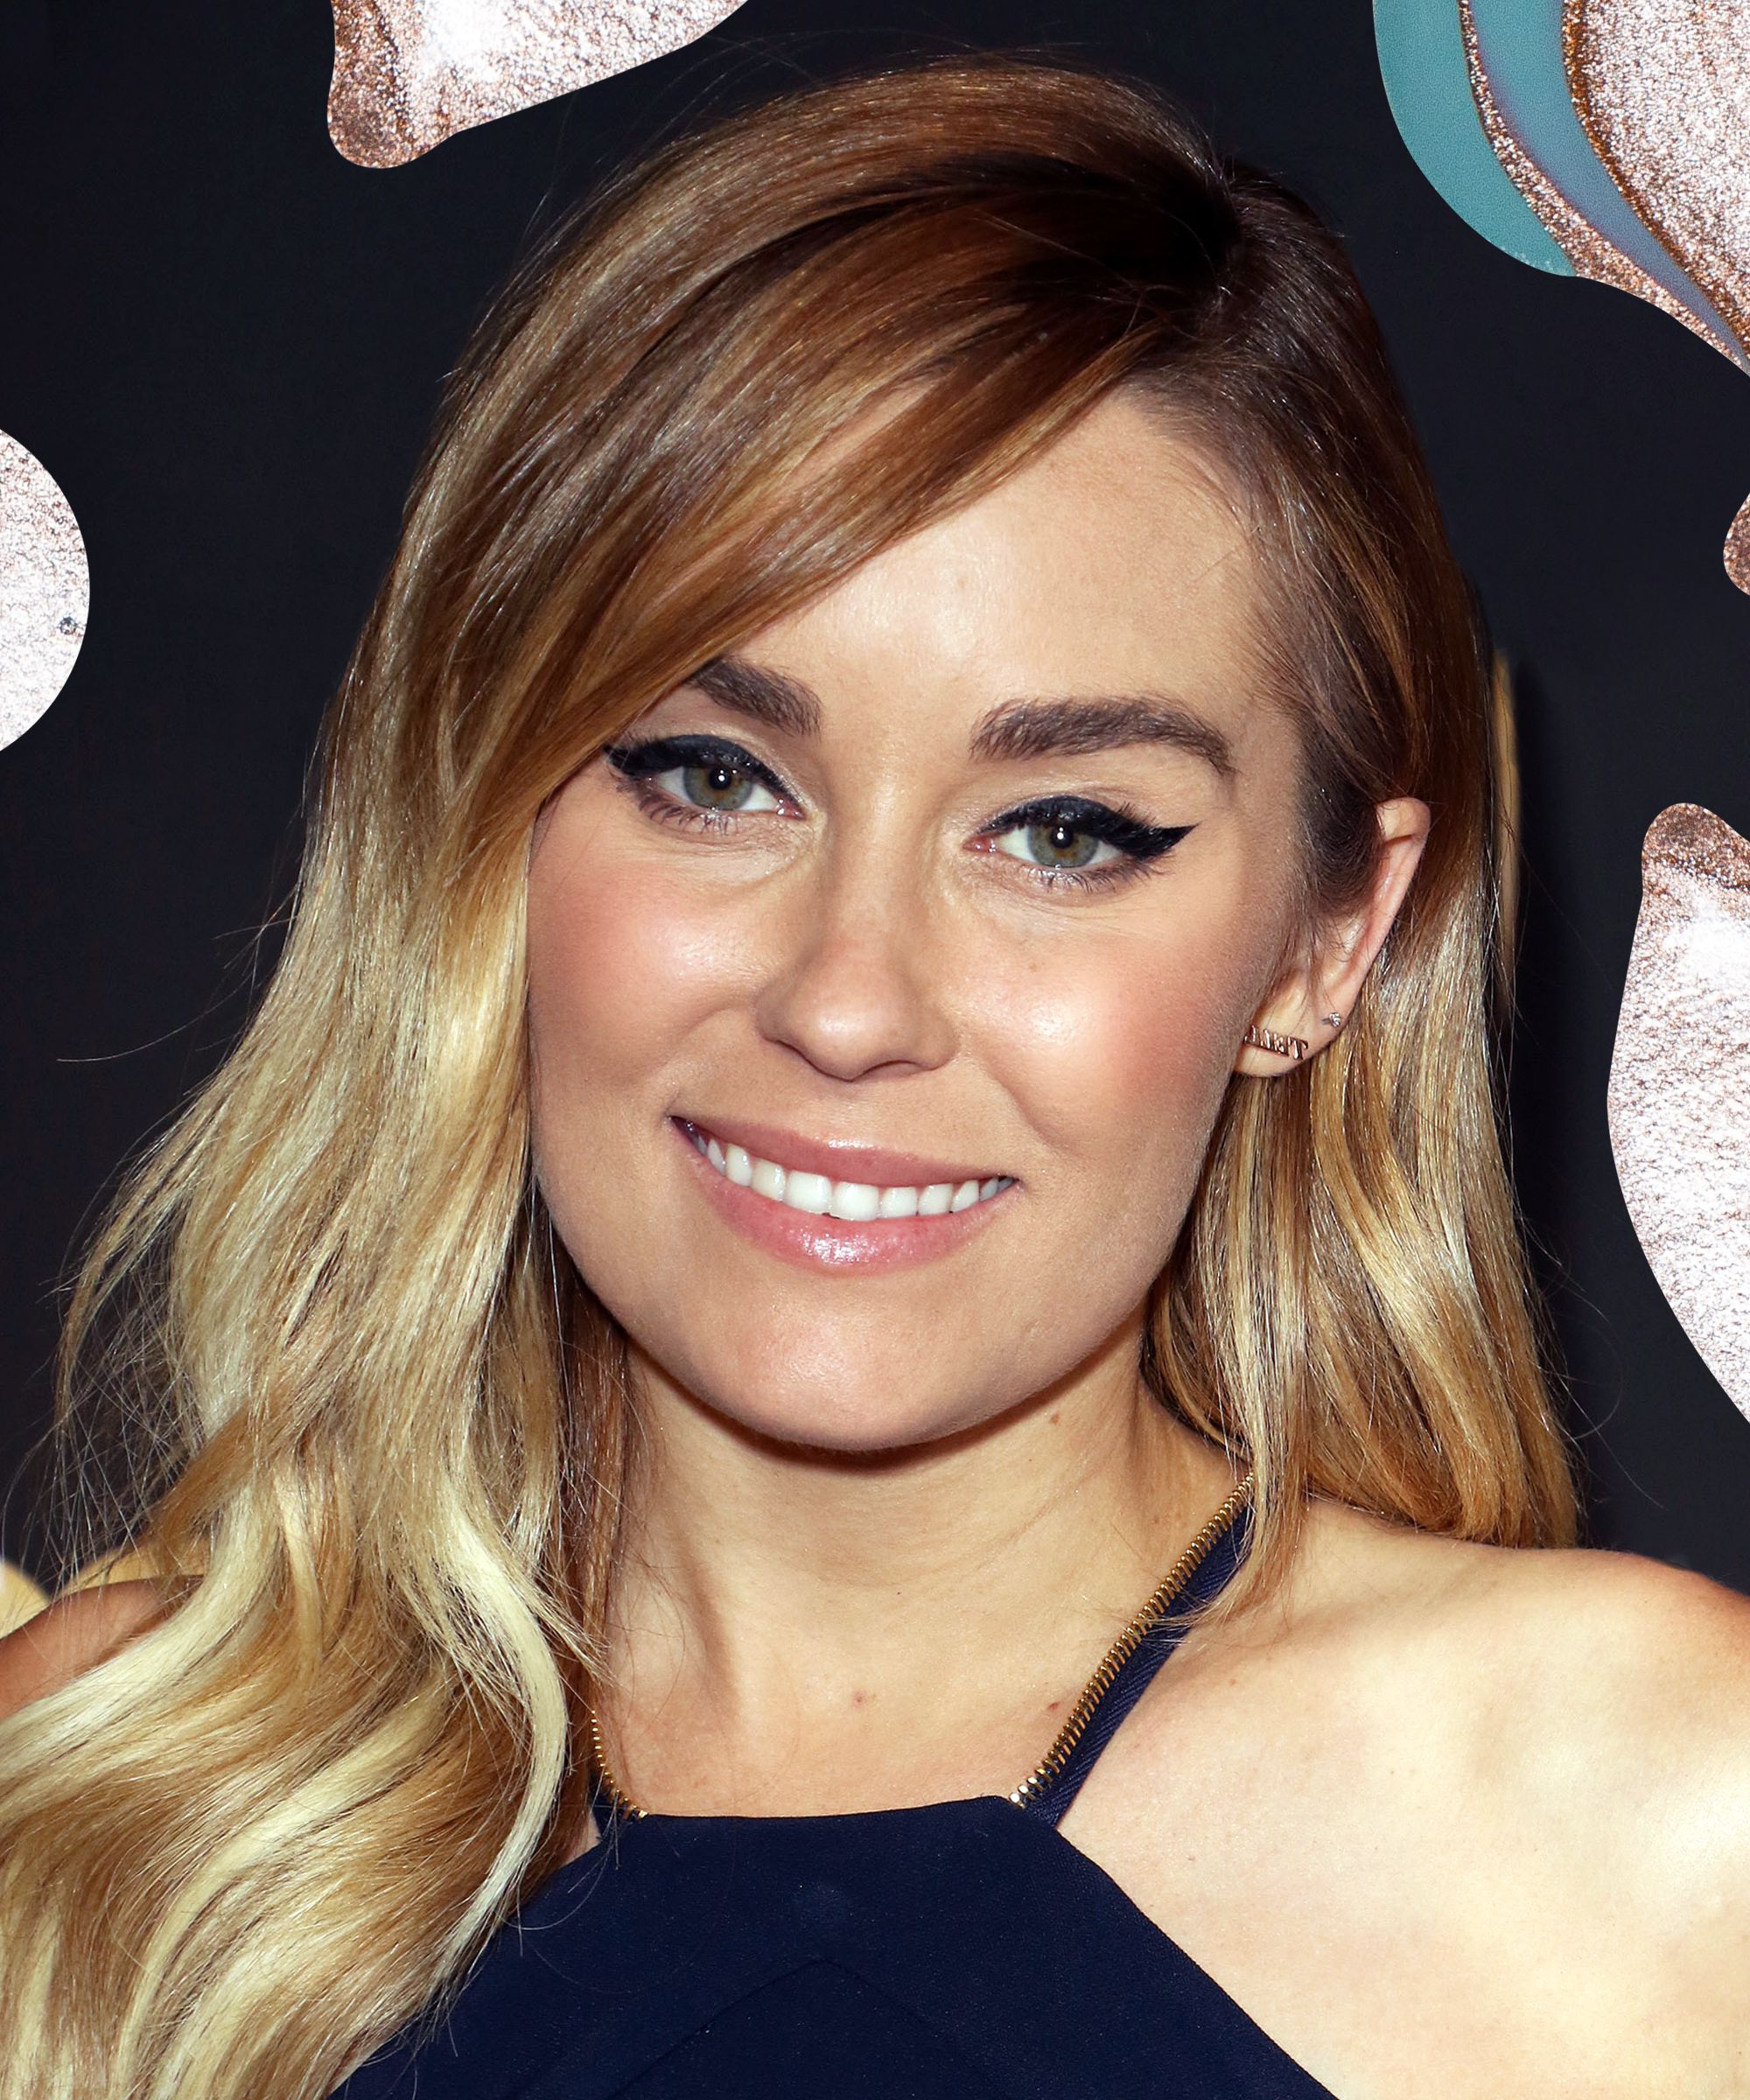 Lauren Conrad Cut Her Hair Short, New Style Trend Intended For Lauren Conrad Short Hairstyles (View 17 of 25)